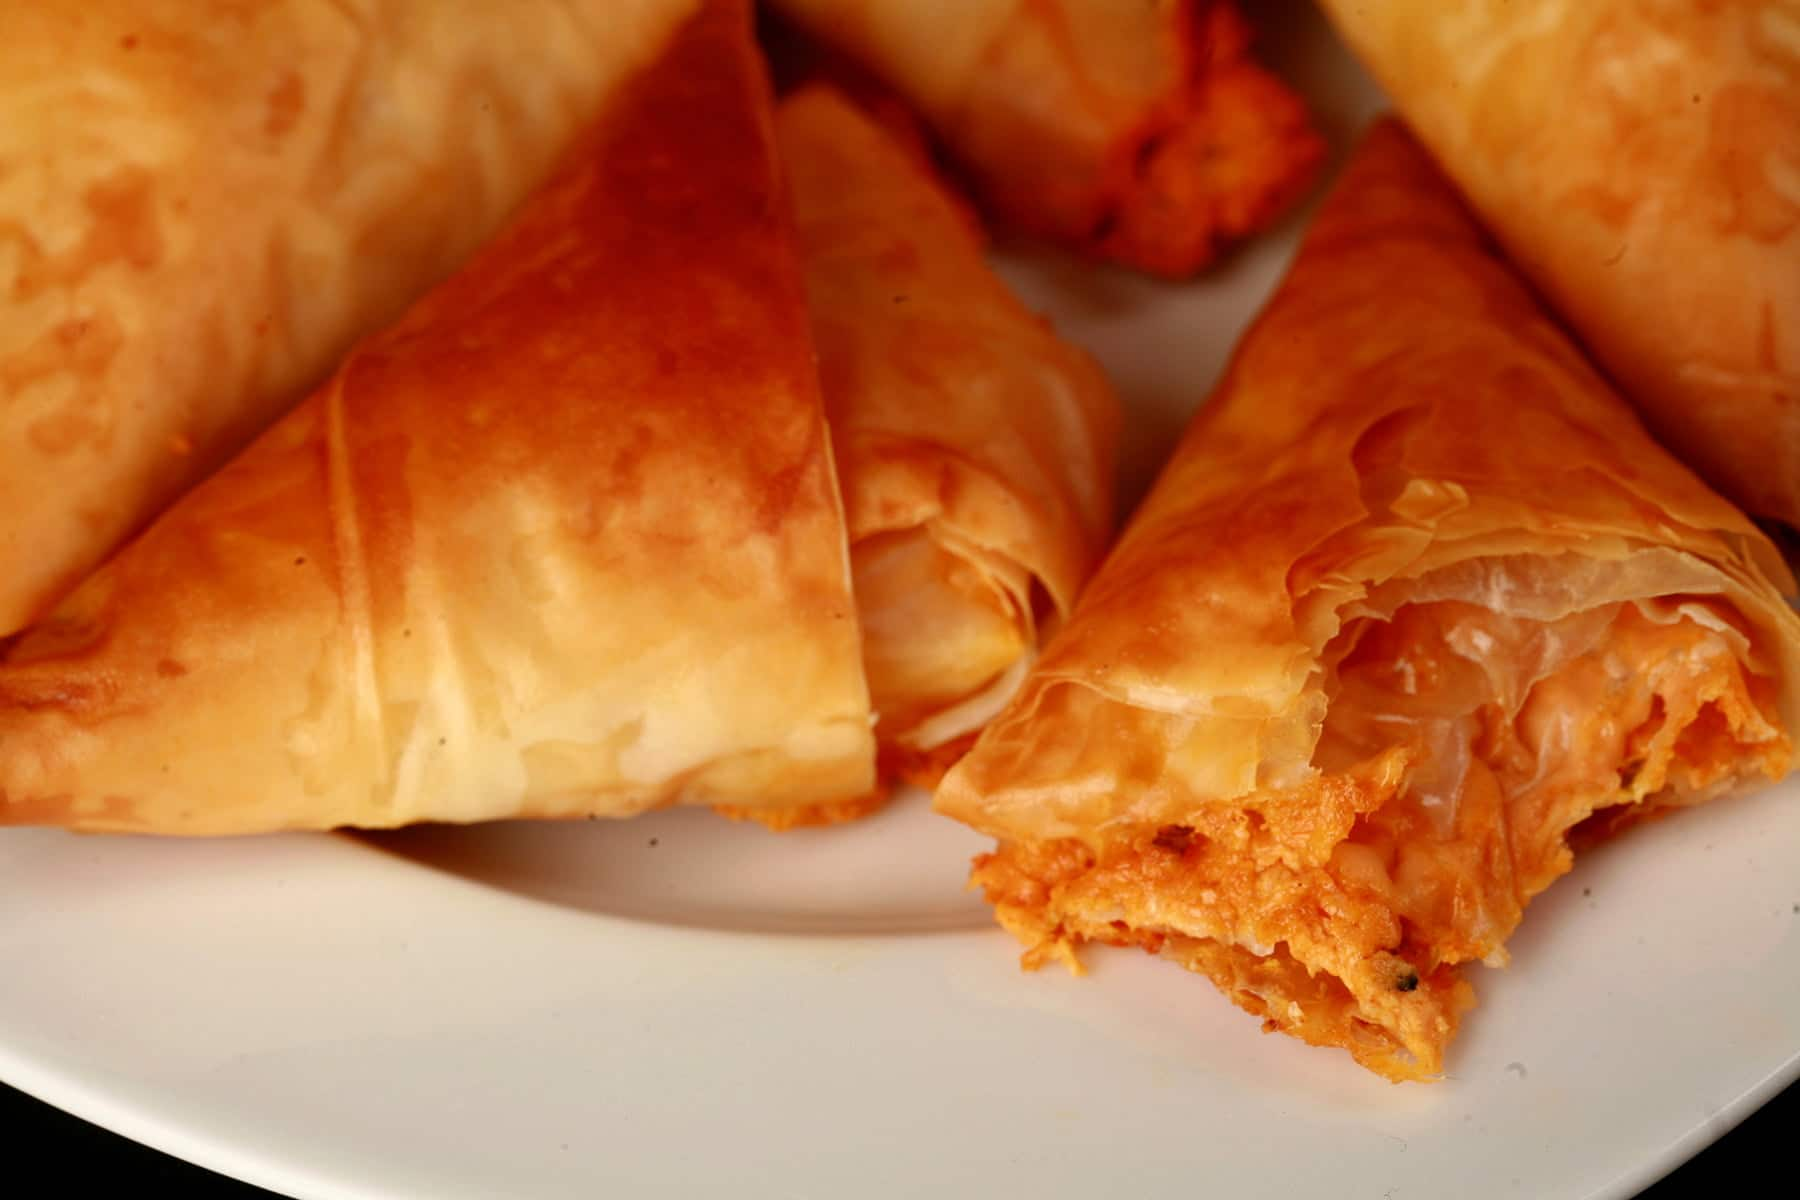 A close up view of crab triangles - a triangular pastry made from folded phyllo dough. They are flaky and crispy, with a red filling showing from one that has been bitten into.